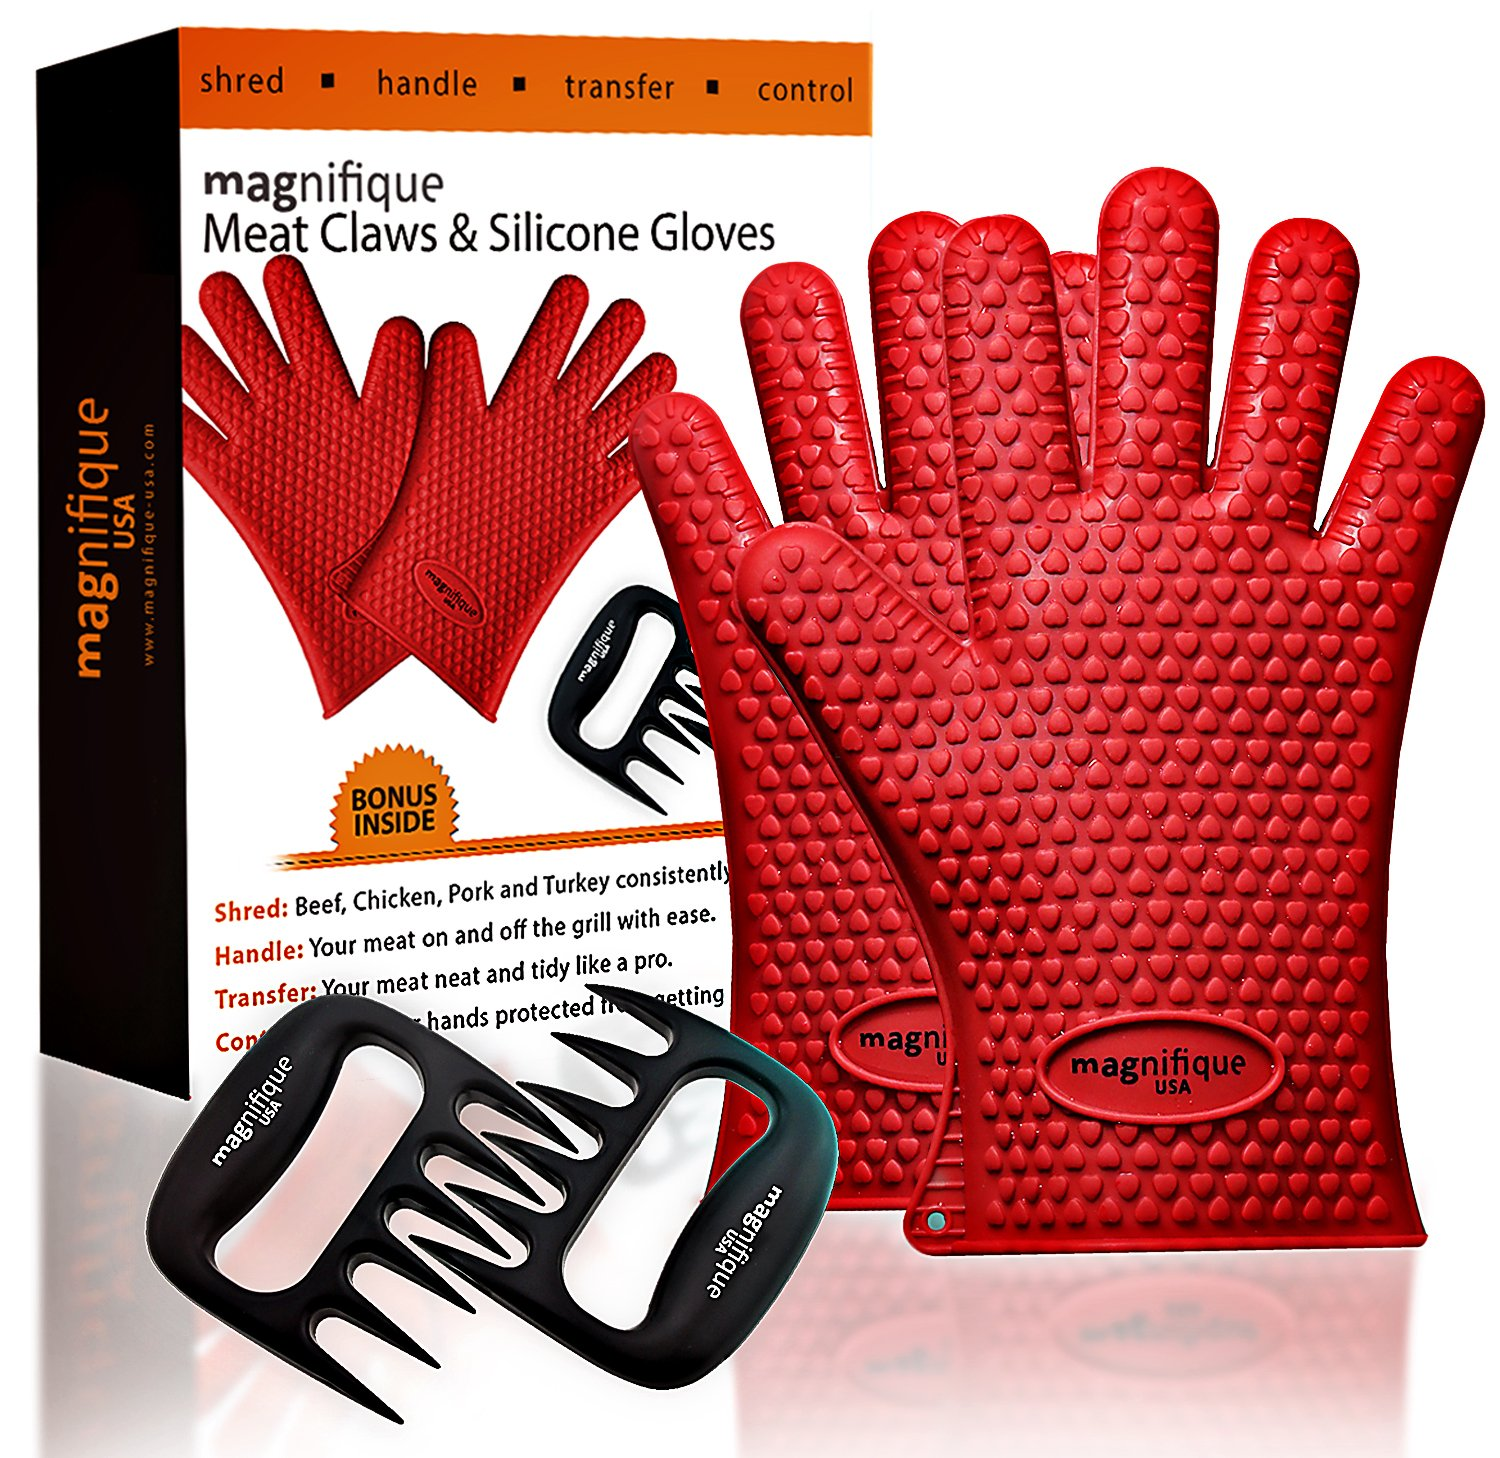 Premium Silicone Heat Resistant Cooking Gloves + Meat Handler BBQ Claw - Perfect for Baking, Cooking, Grilling. Use as Pot Holder- Red color by Magnifique USA